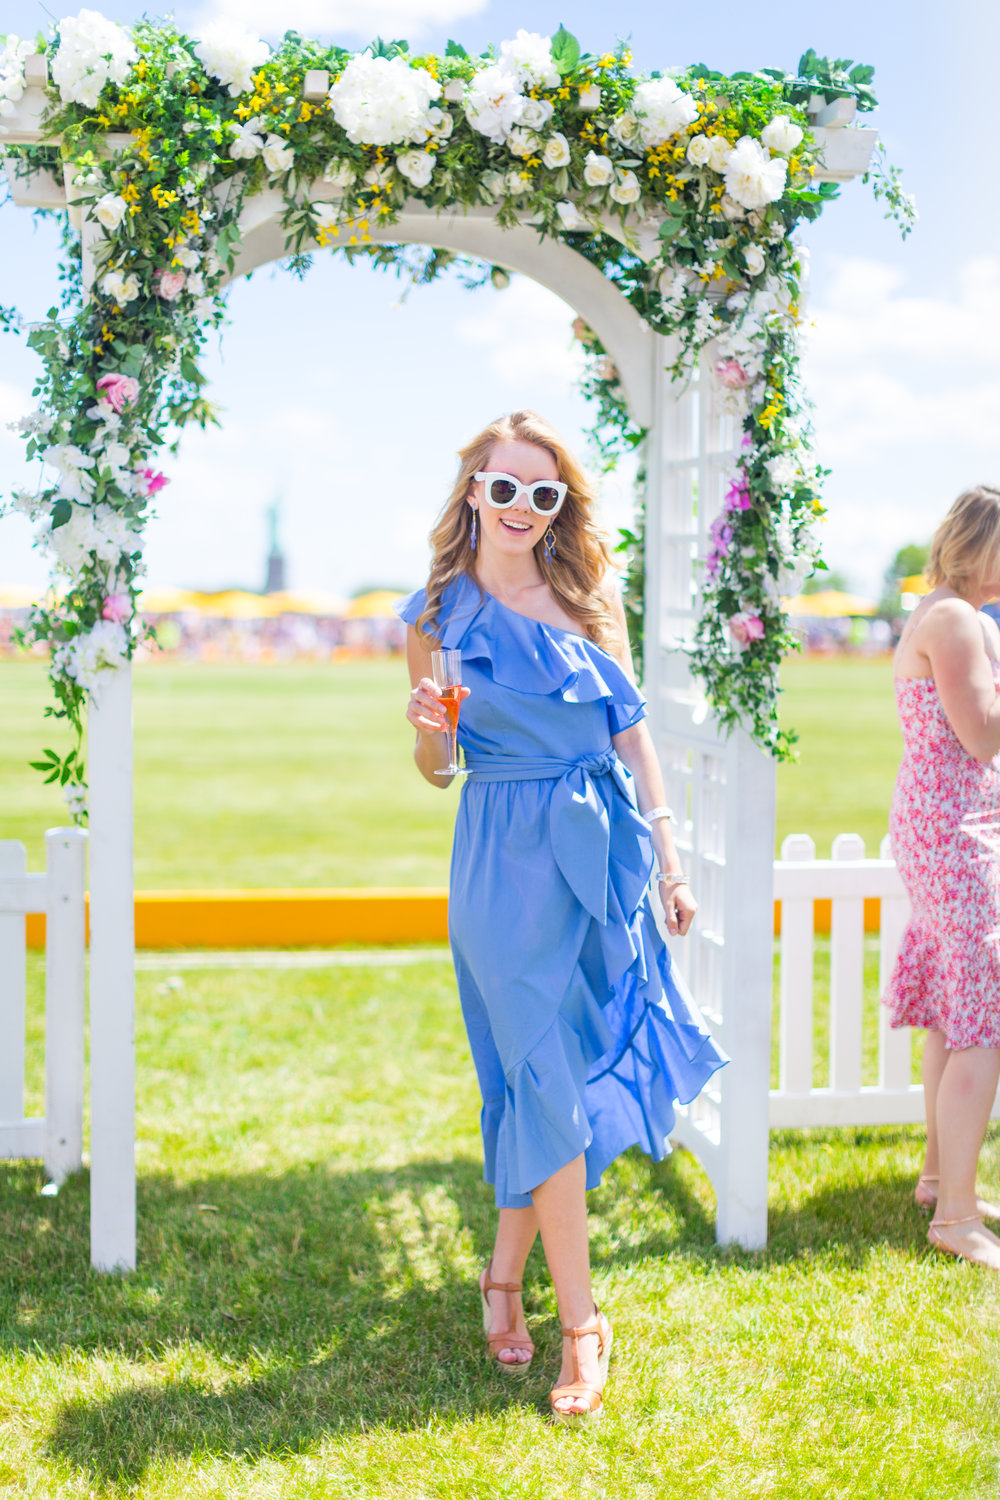 Veuve Clicquot Polo Classic NYC Summer Style Ruffled One Shoulder Blue Dress-8.jpg